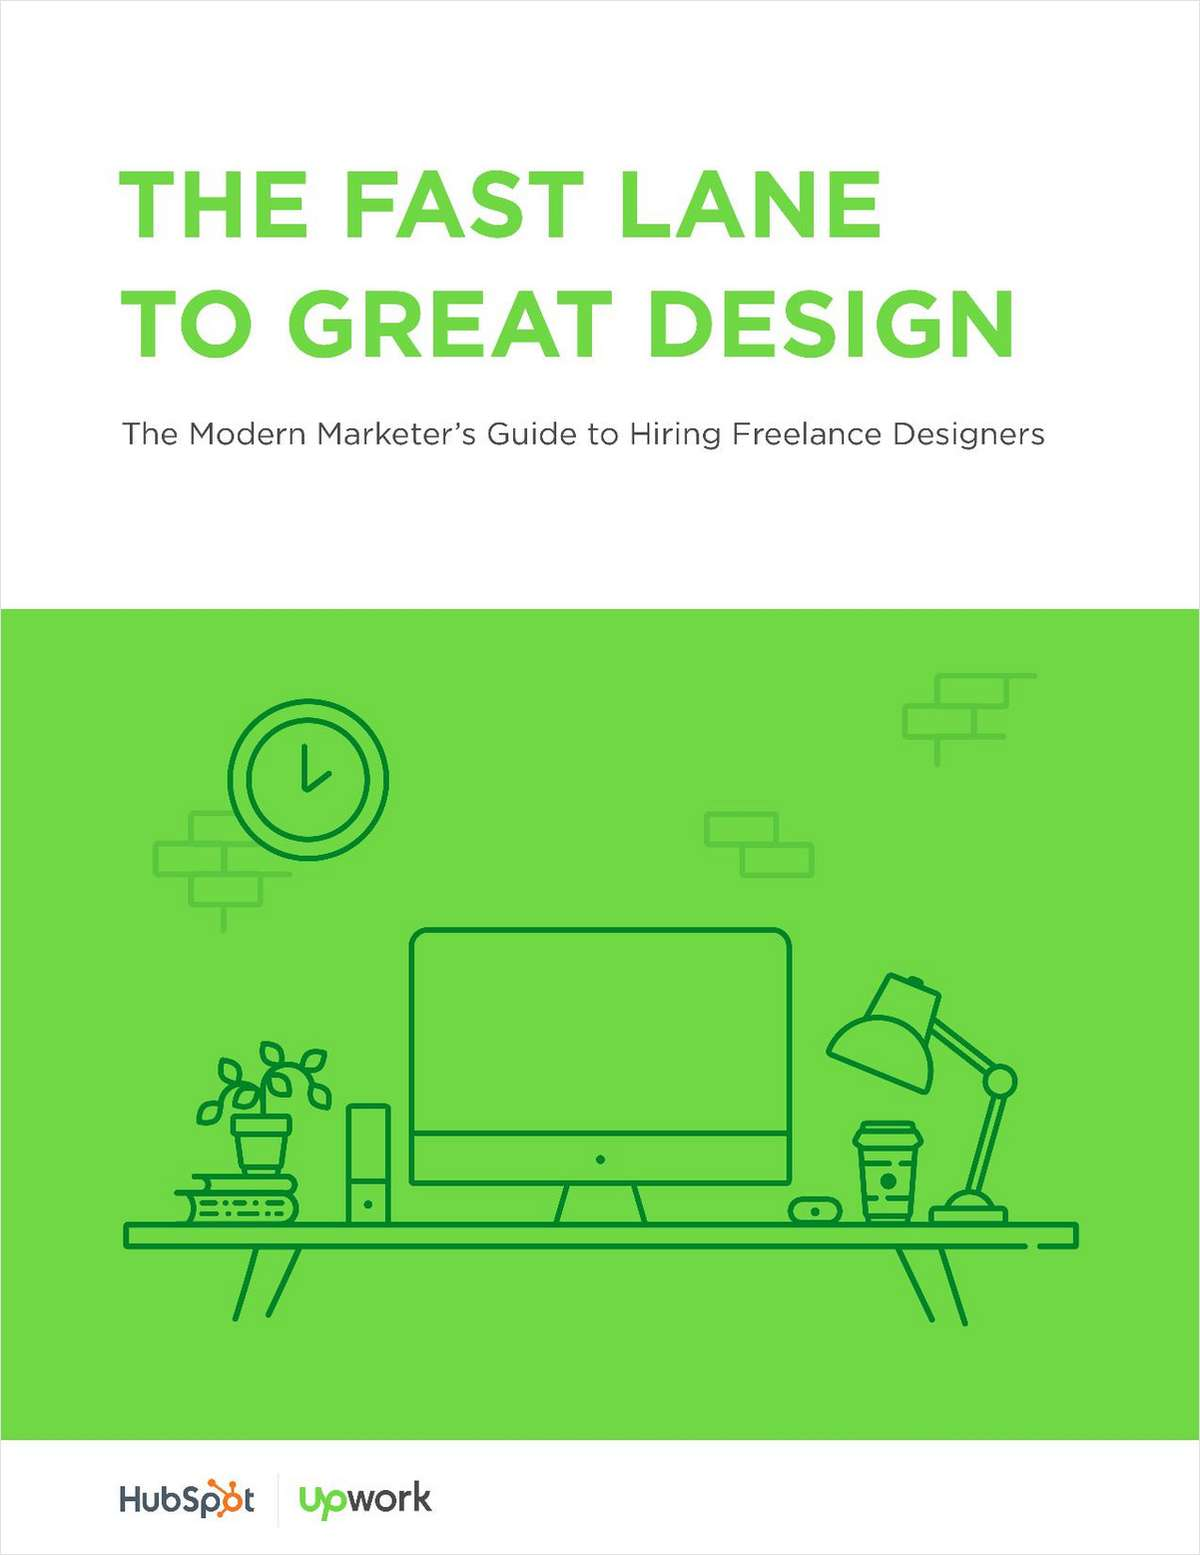 The Fast Lane to Great Design